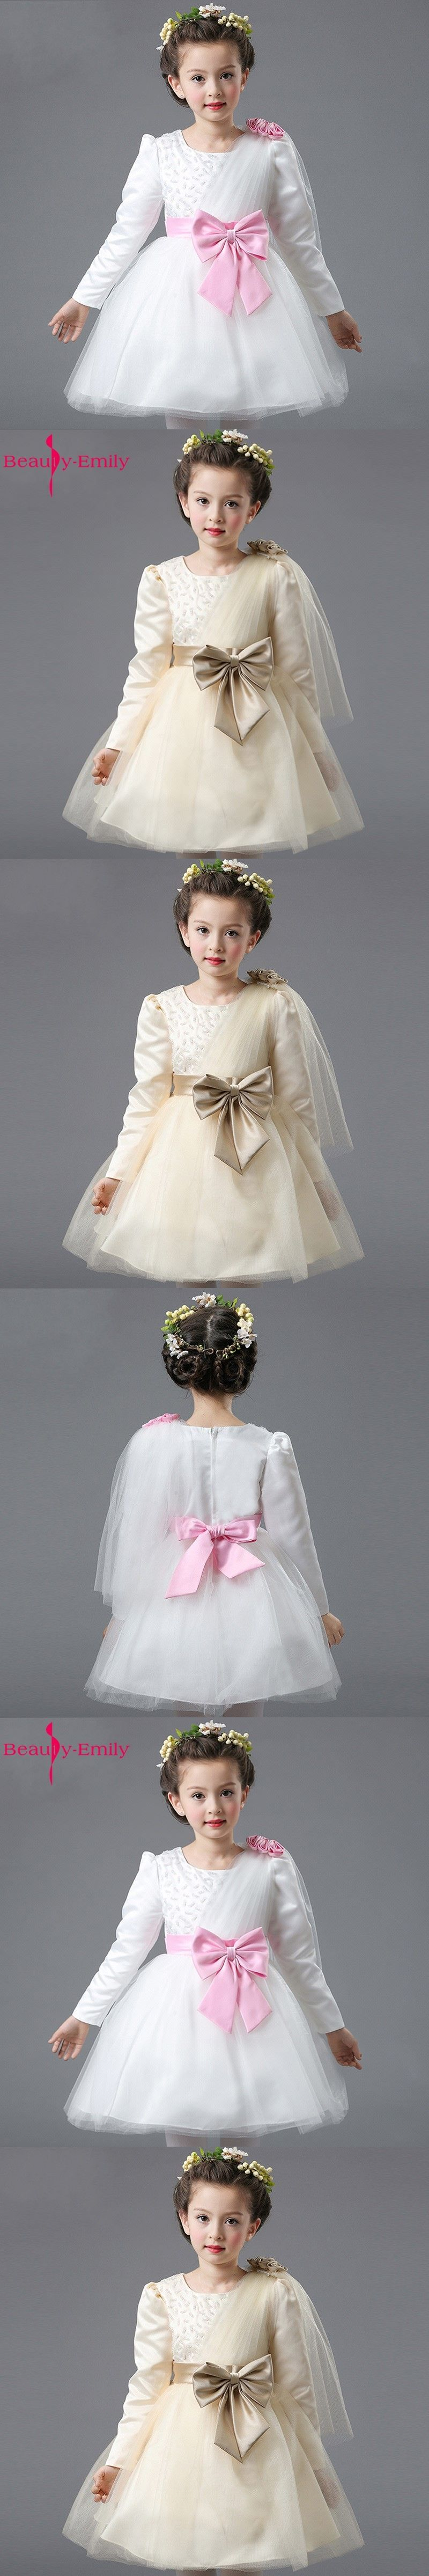 Beautyemily flower girl dresses childrenus party prom dresses